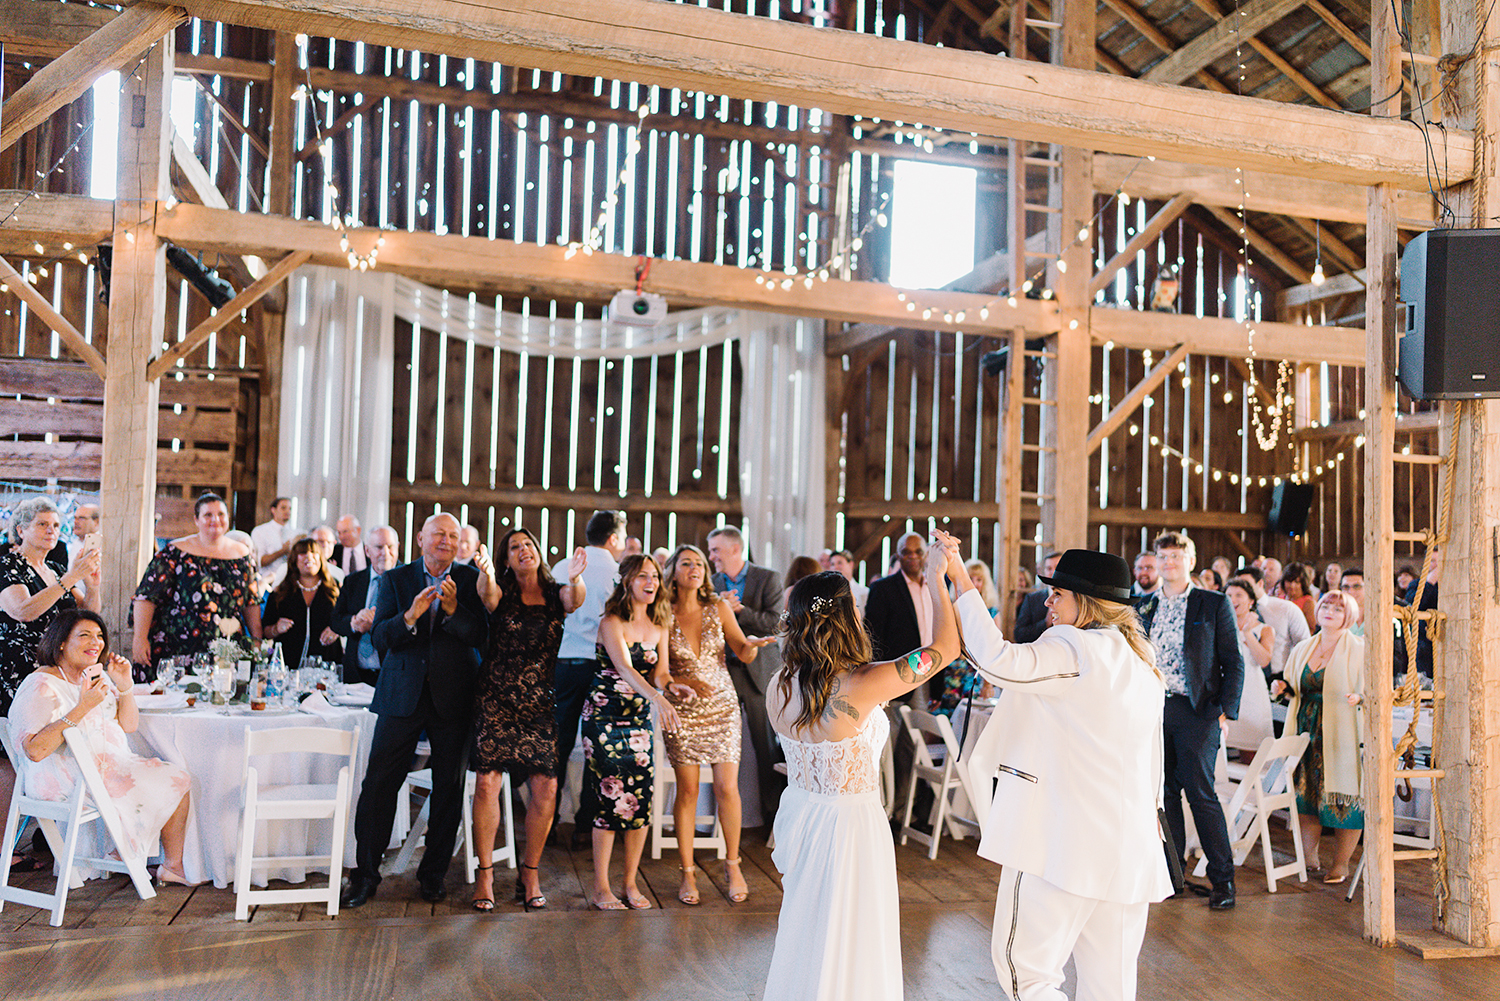 cambium-farms-wedding-ryanne-hollies-photography-gay-wedding-lgbtq-trendy-cool-badass-junebug-weddings-inspiration-cocktail-hour-bride-and-bride-entering-reception-celebration-cheering.jpg